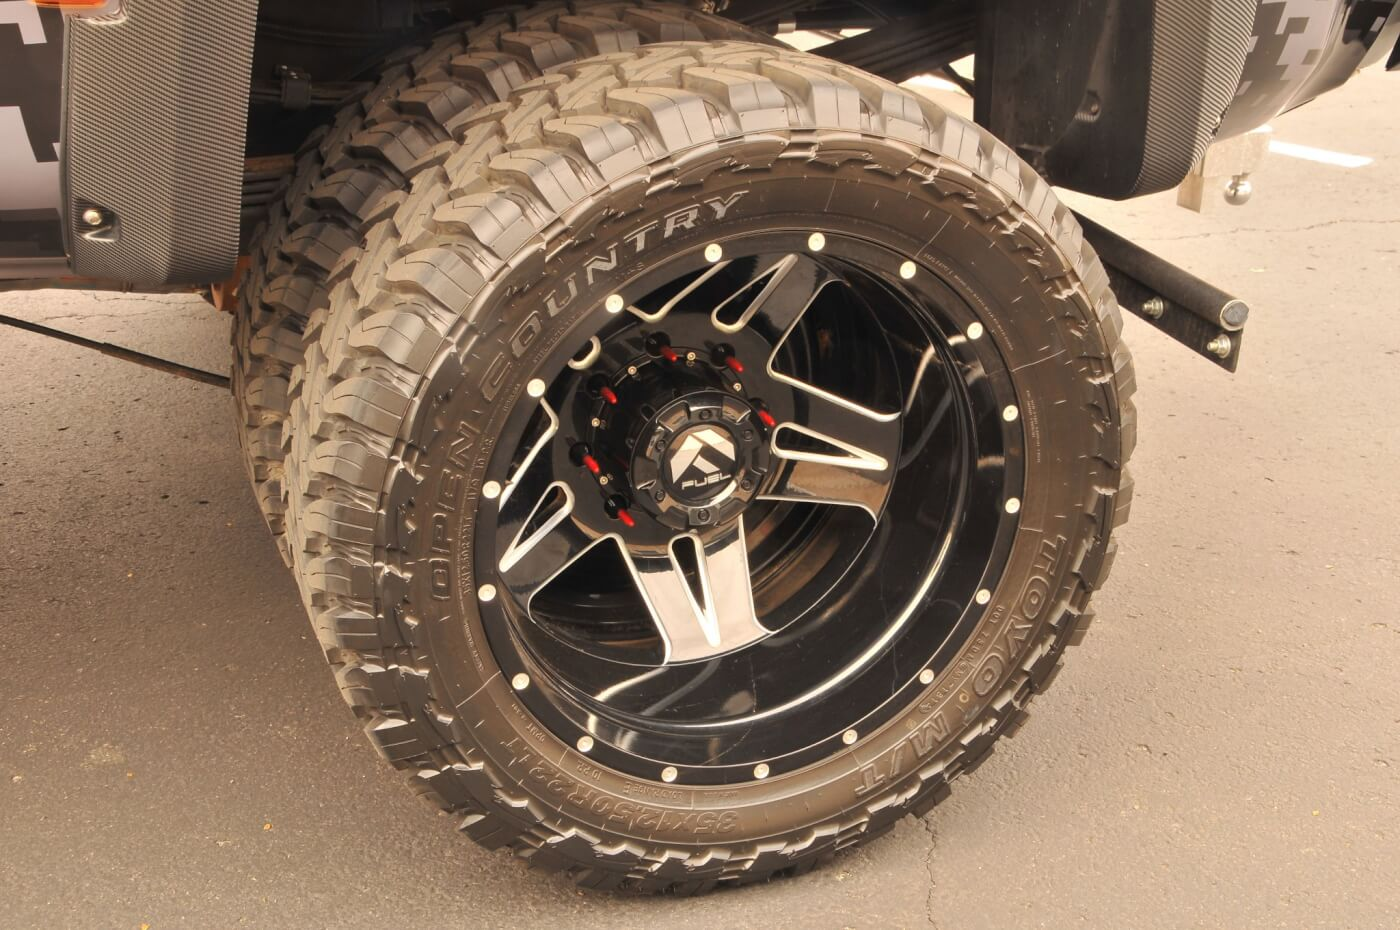 The wheels are 22-inch Fuel Full Blown models with lug nuts that look like .50-caliber bullets (from V&V Concepts). Toyo Open Country M/T tires provide lots of traction for any offroad excursions and are relatively quiet on the highway.